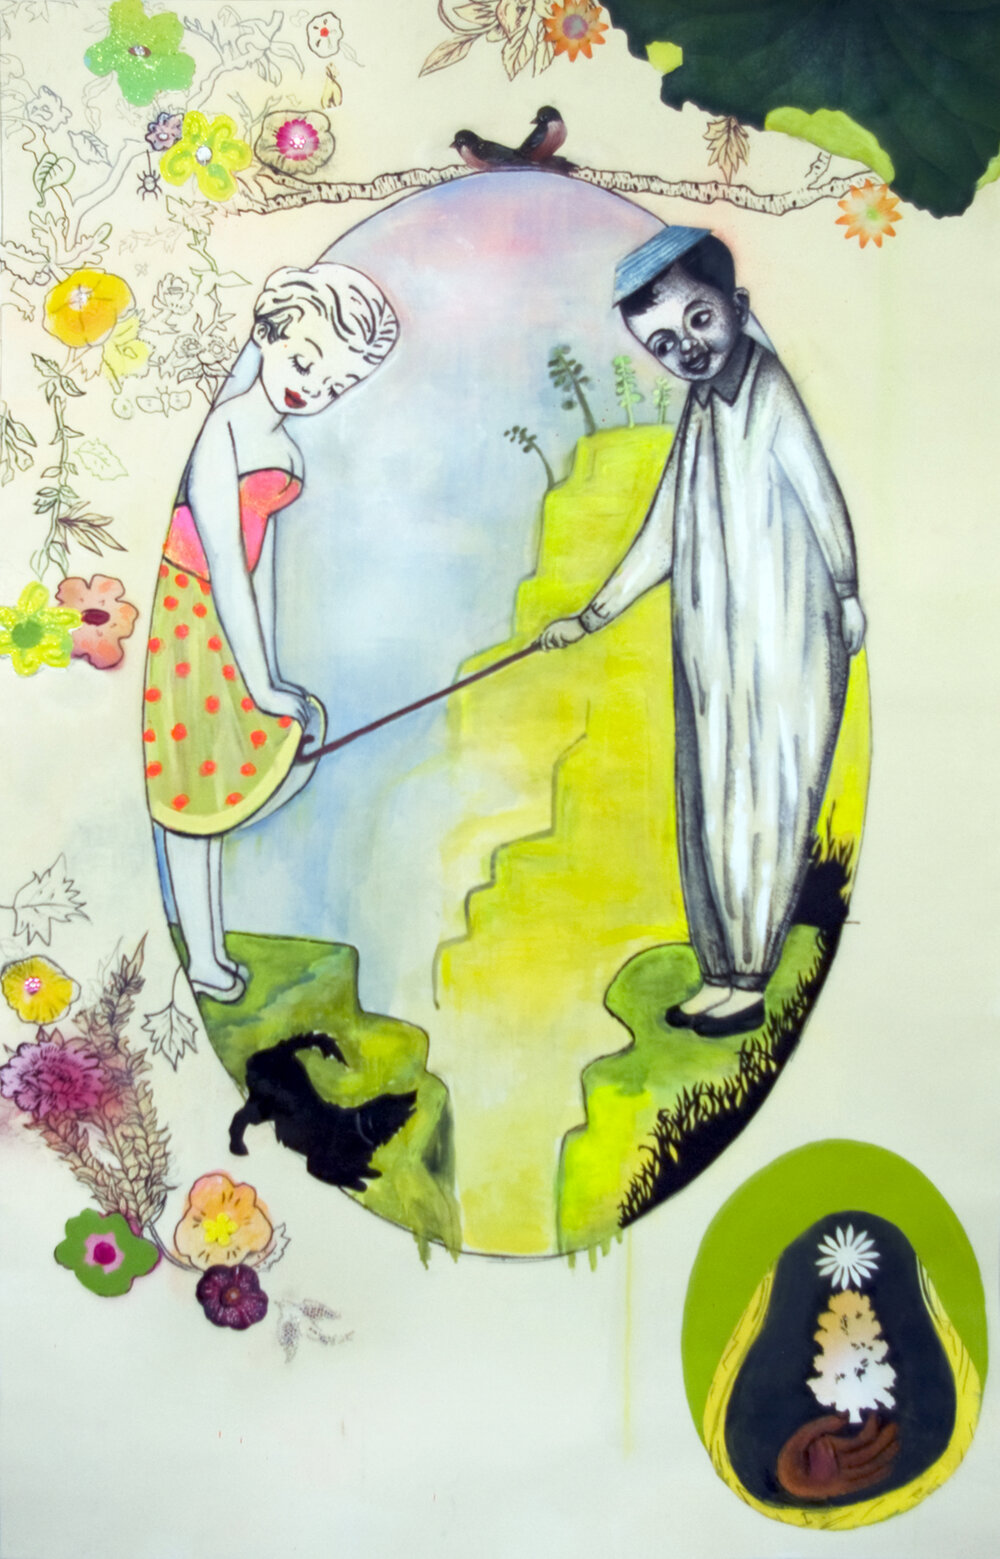 "Little Sentimental Diversions, 56"" × 35"", mixed media on paper, 2009"